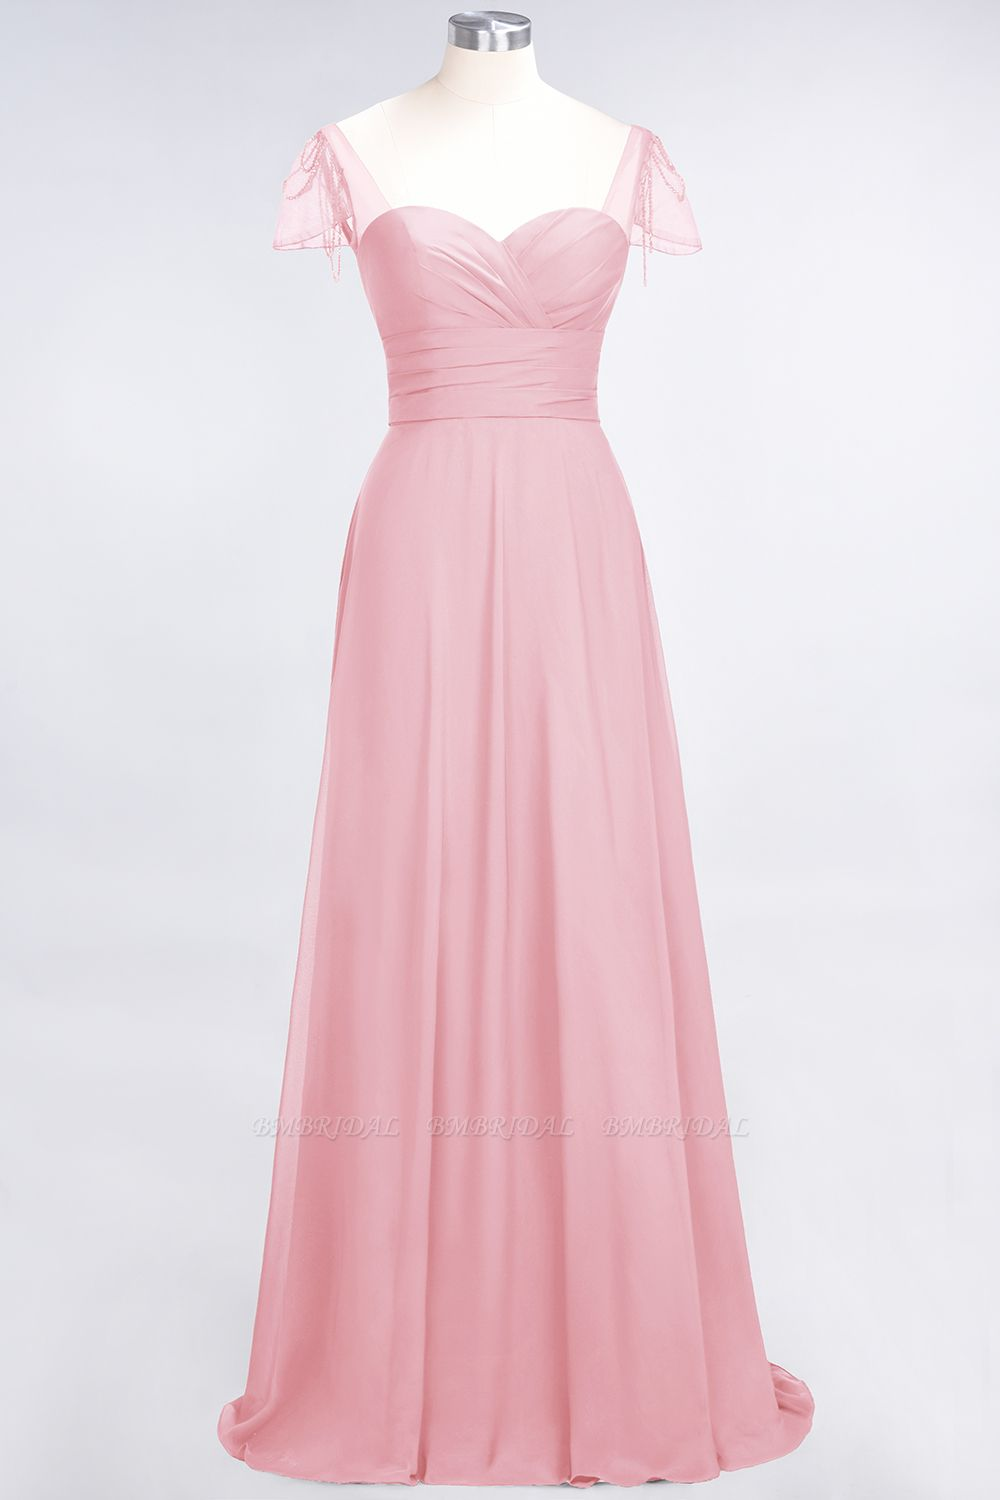 Chic Chiffon Sweetheart Cap-Sleeves Ruffle Bridesmaid Dresses with Beadings